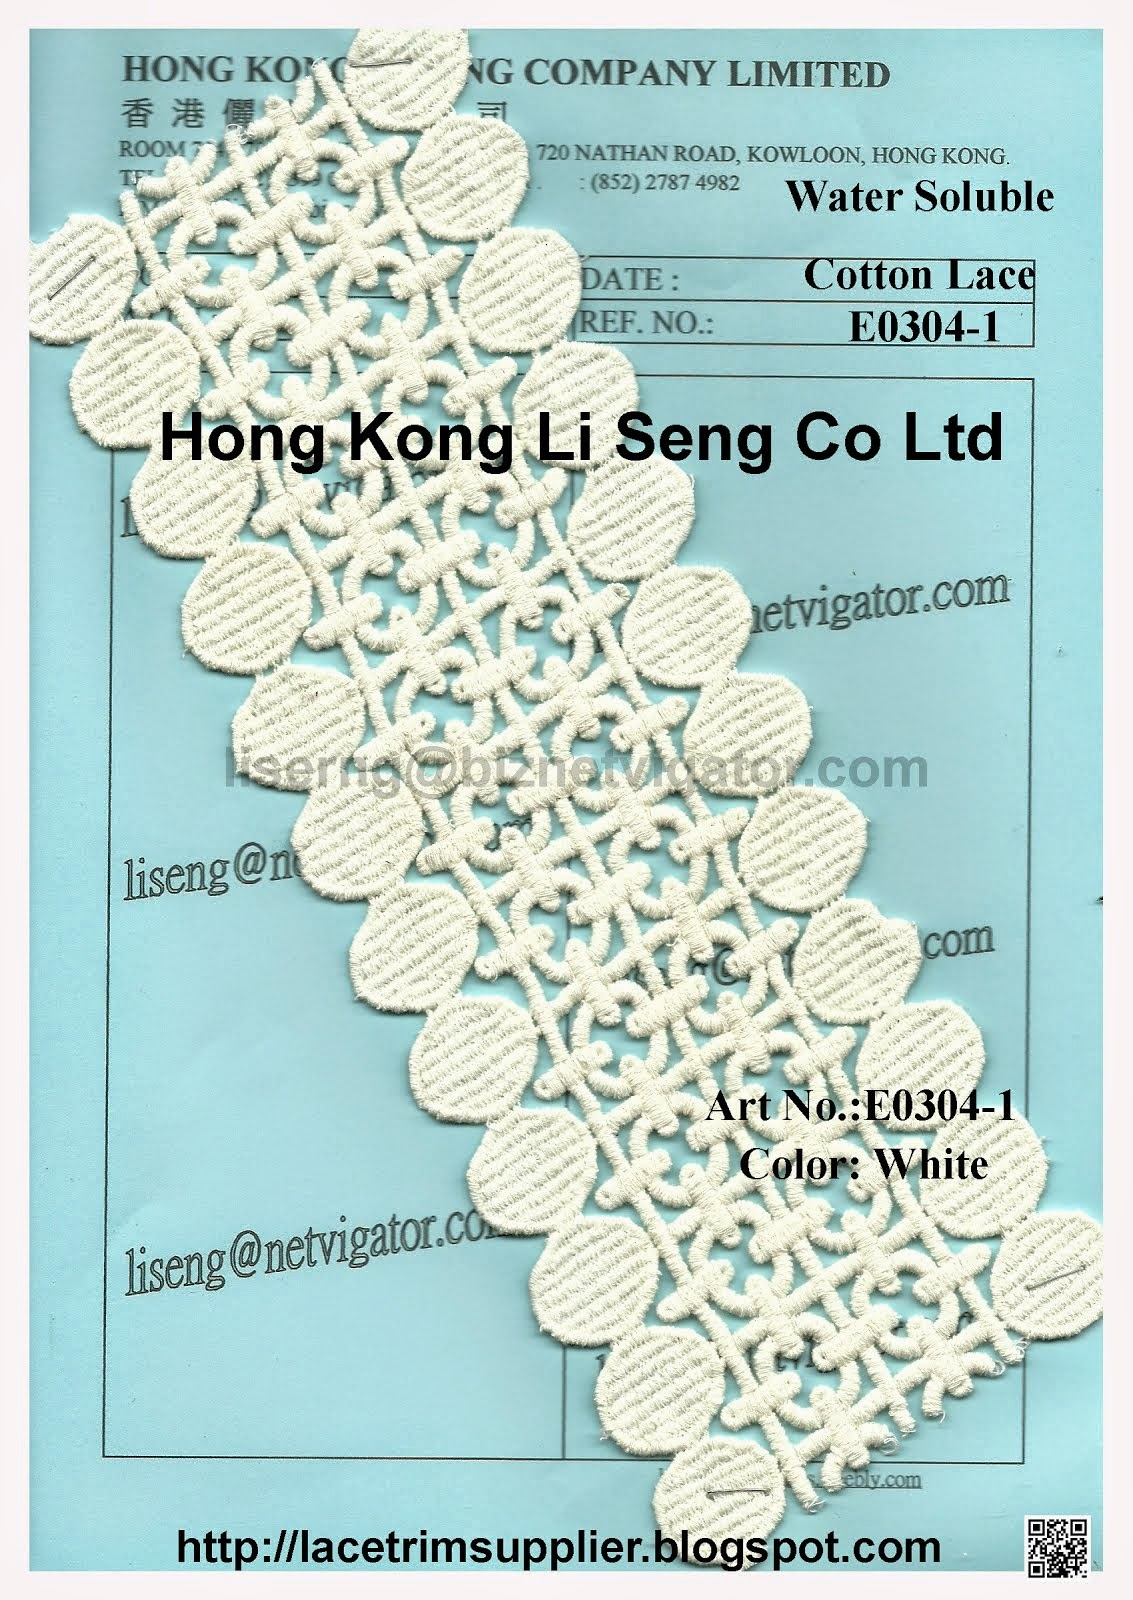 Water Soluble Embroidery Cotton Lace Manufacturer - Hong Kong Li Seng Co Ltd